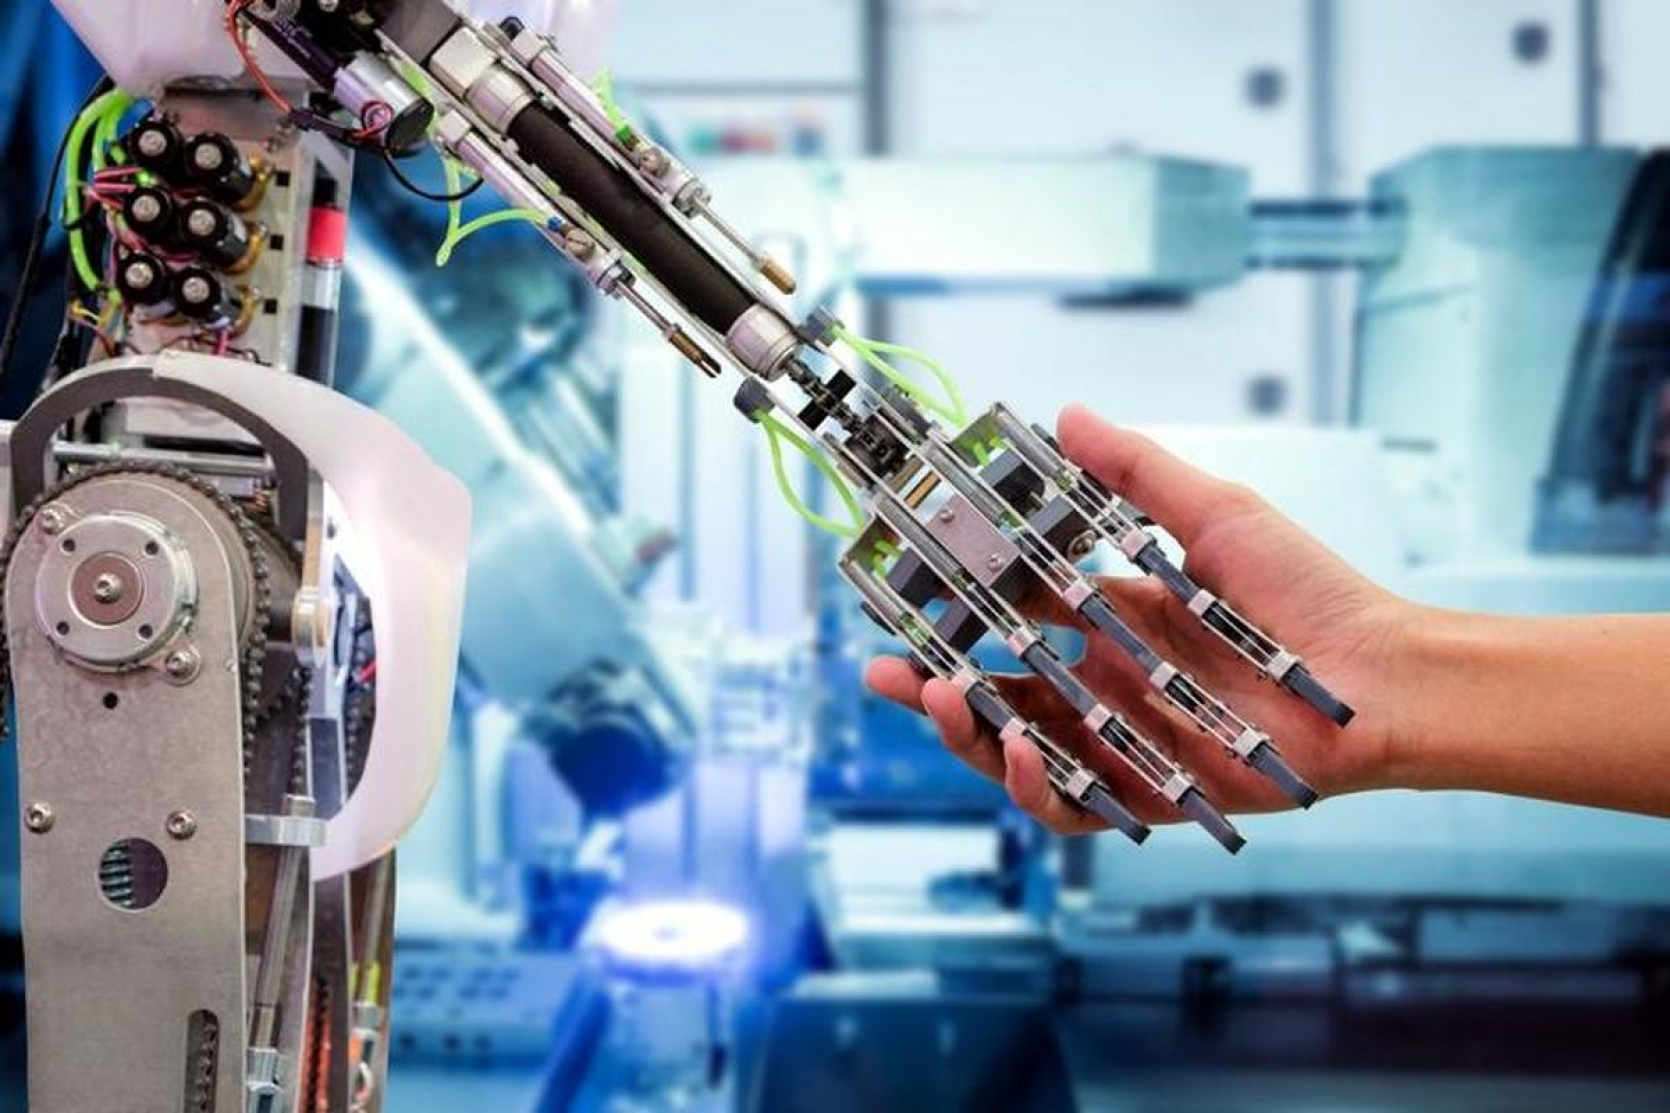 HOW ARTIFICIAL INTELLIGENCE IS REVOLUTIONIZING INDUSTRIAL PRODUCTION